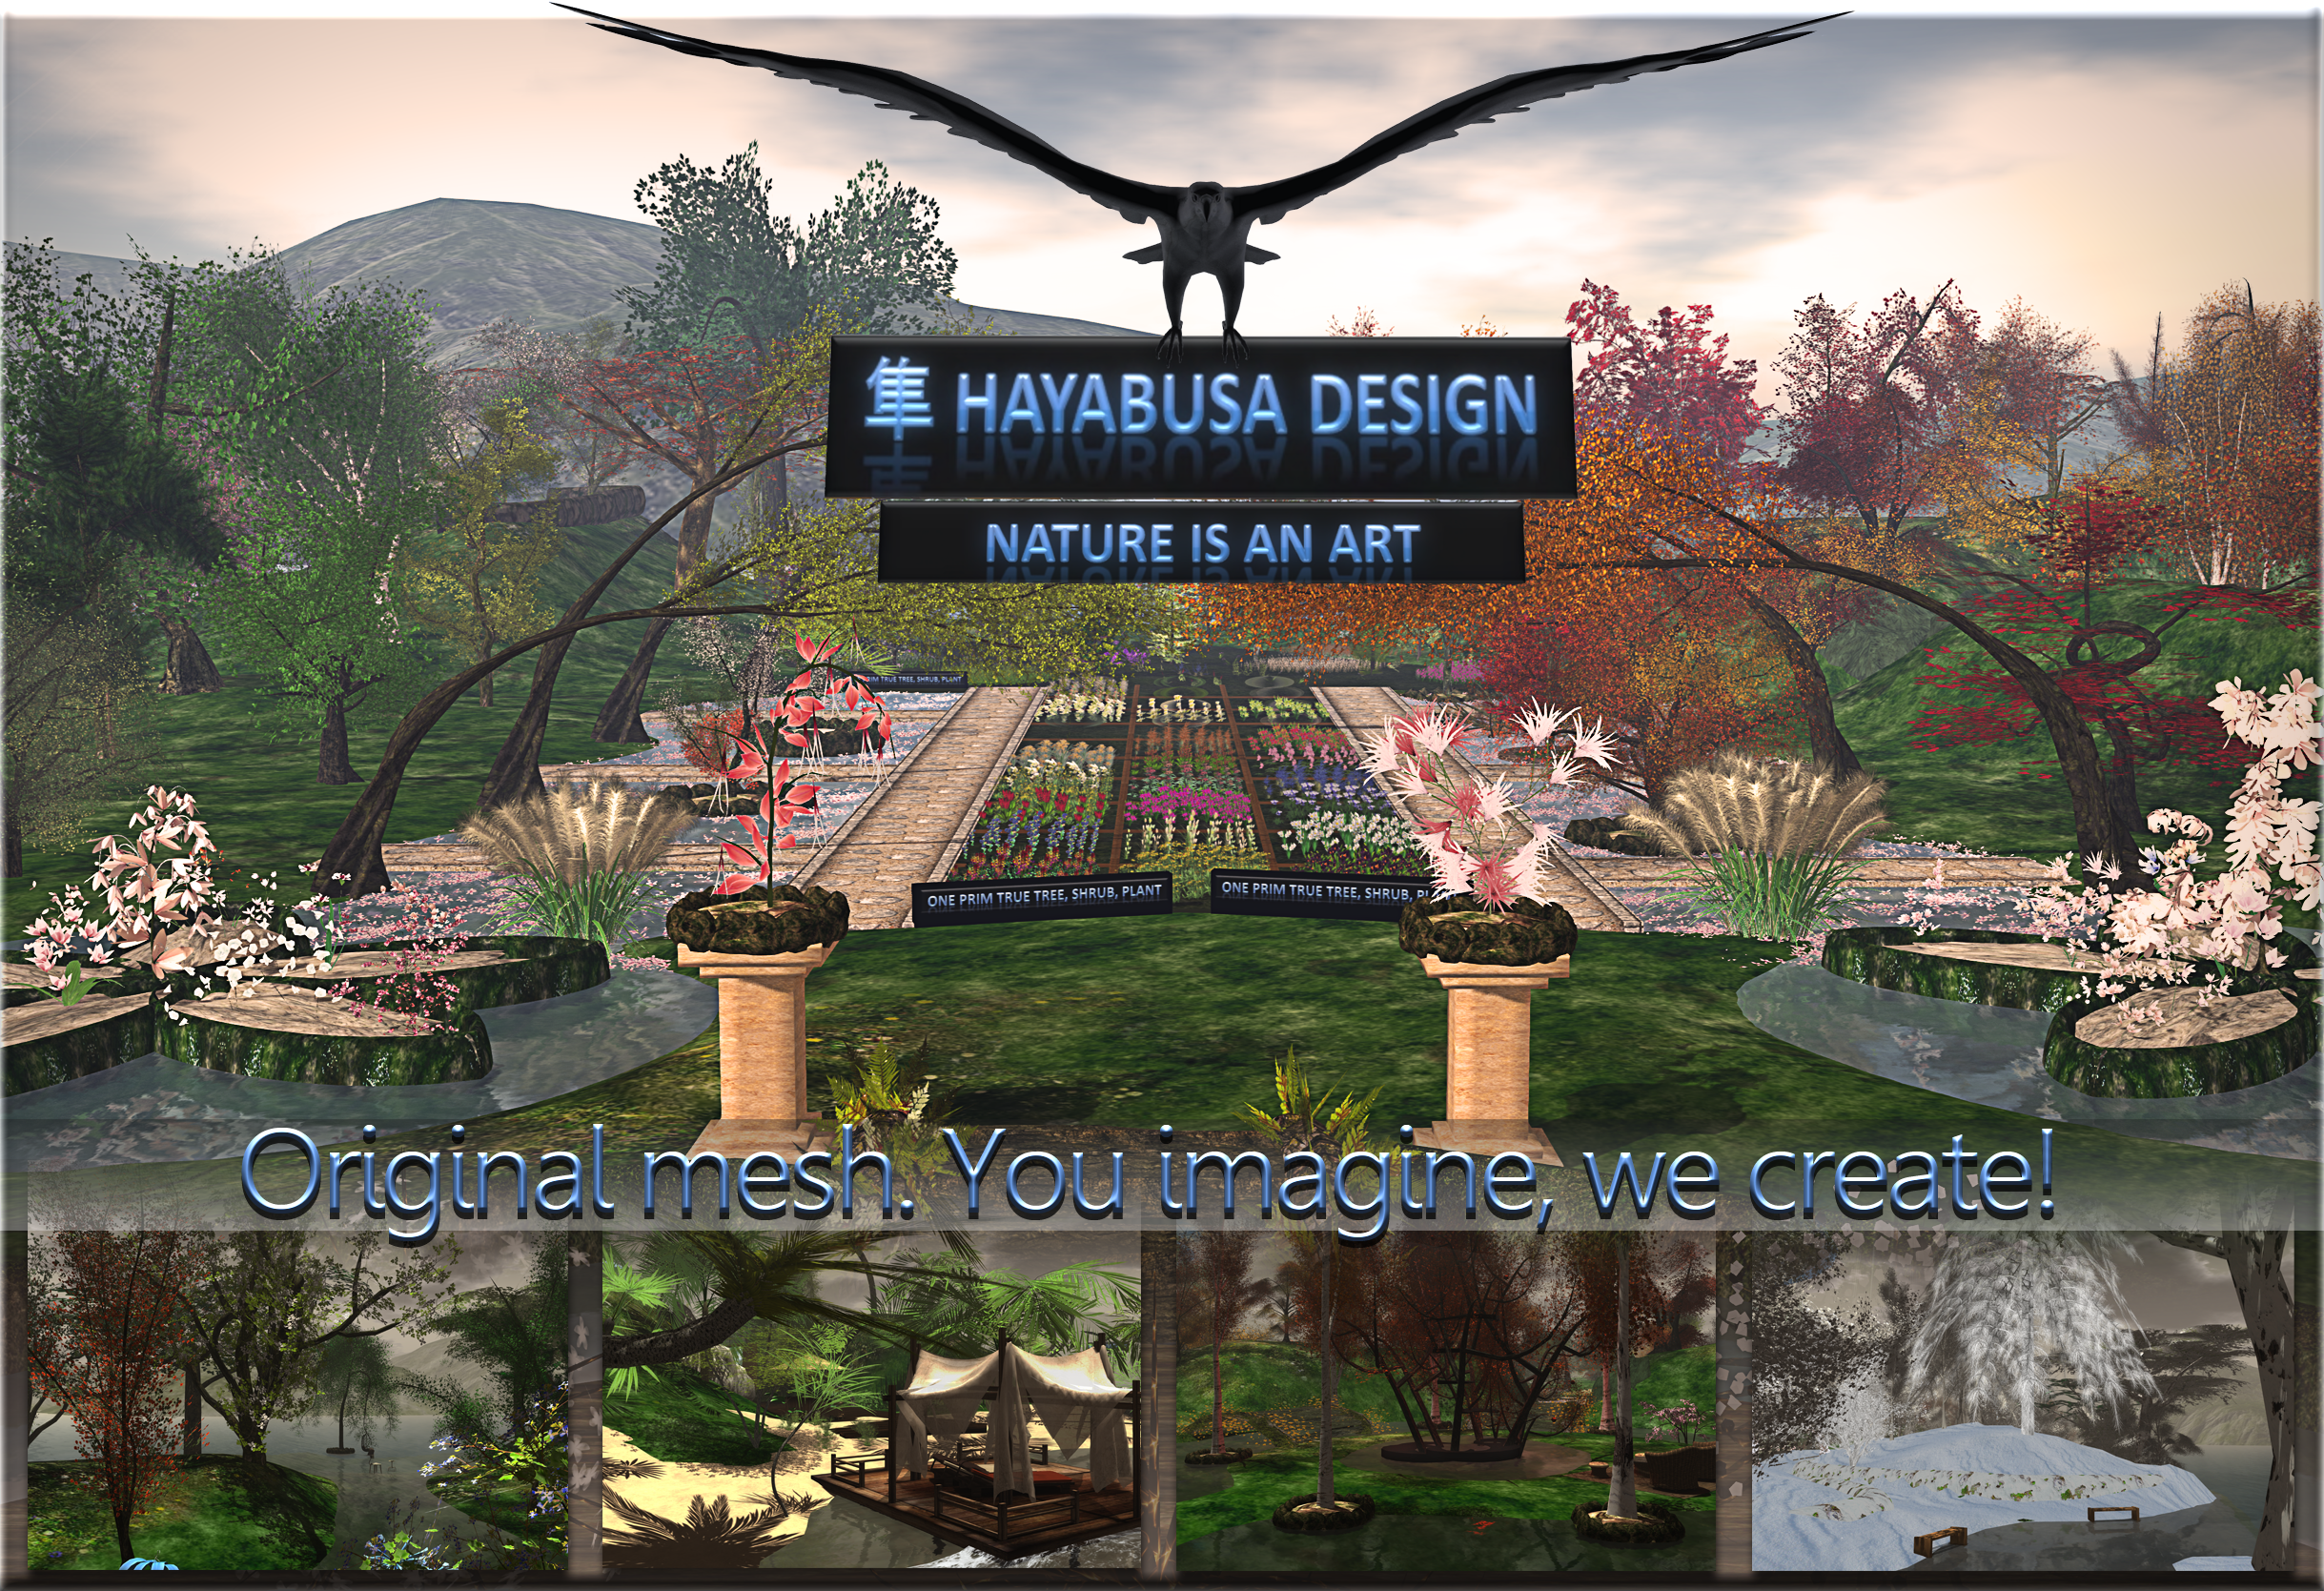 Hayabusa design ad for LTD